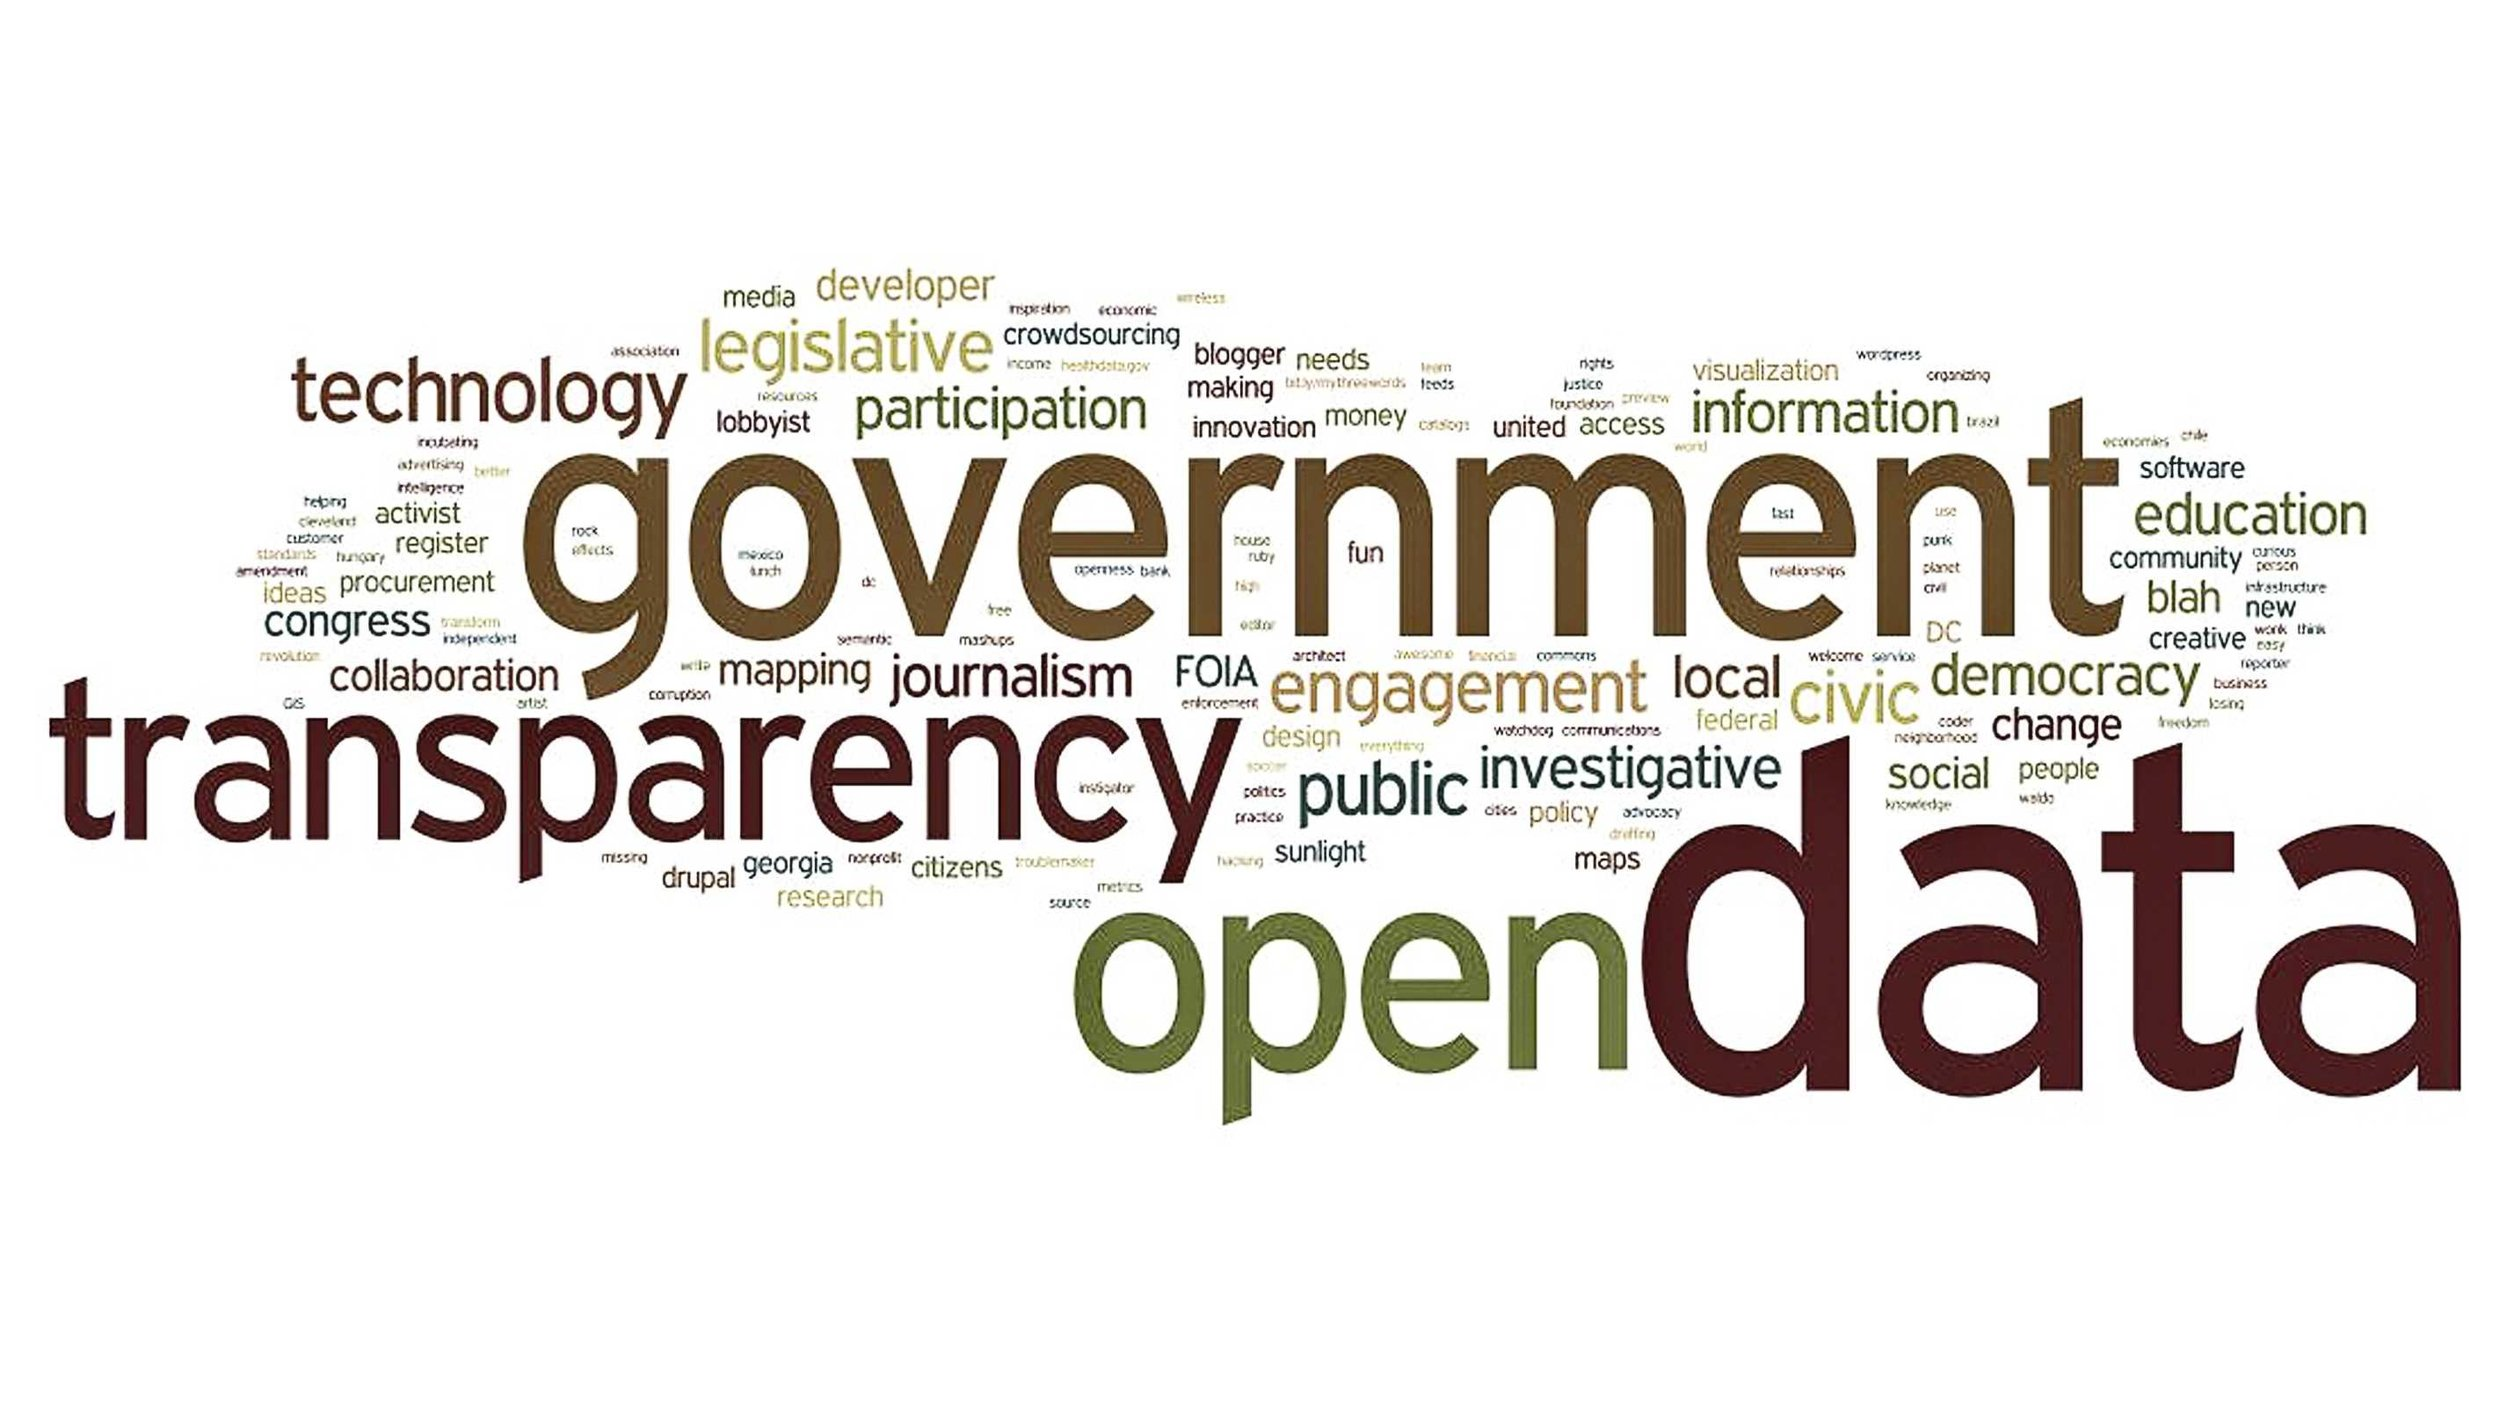 transparency-and-open-data-governments-doing-enough.jpg